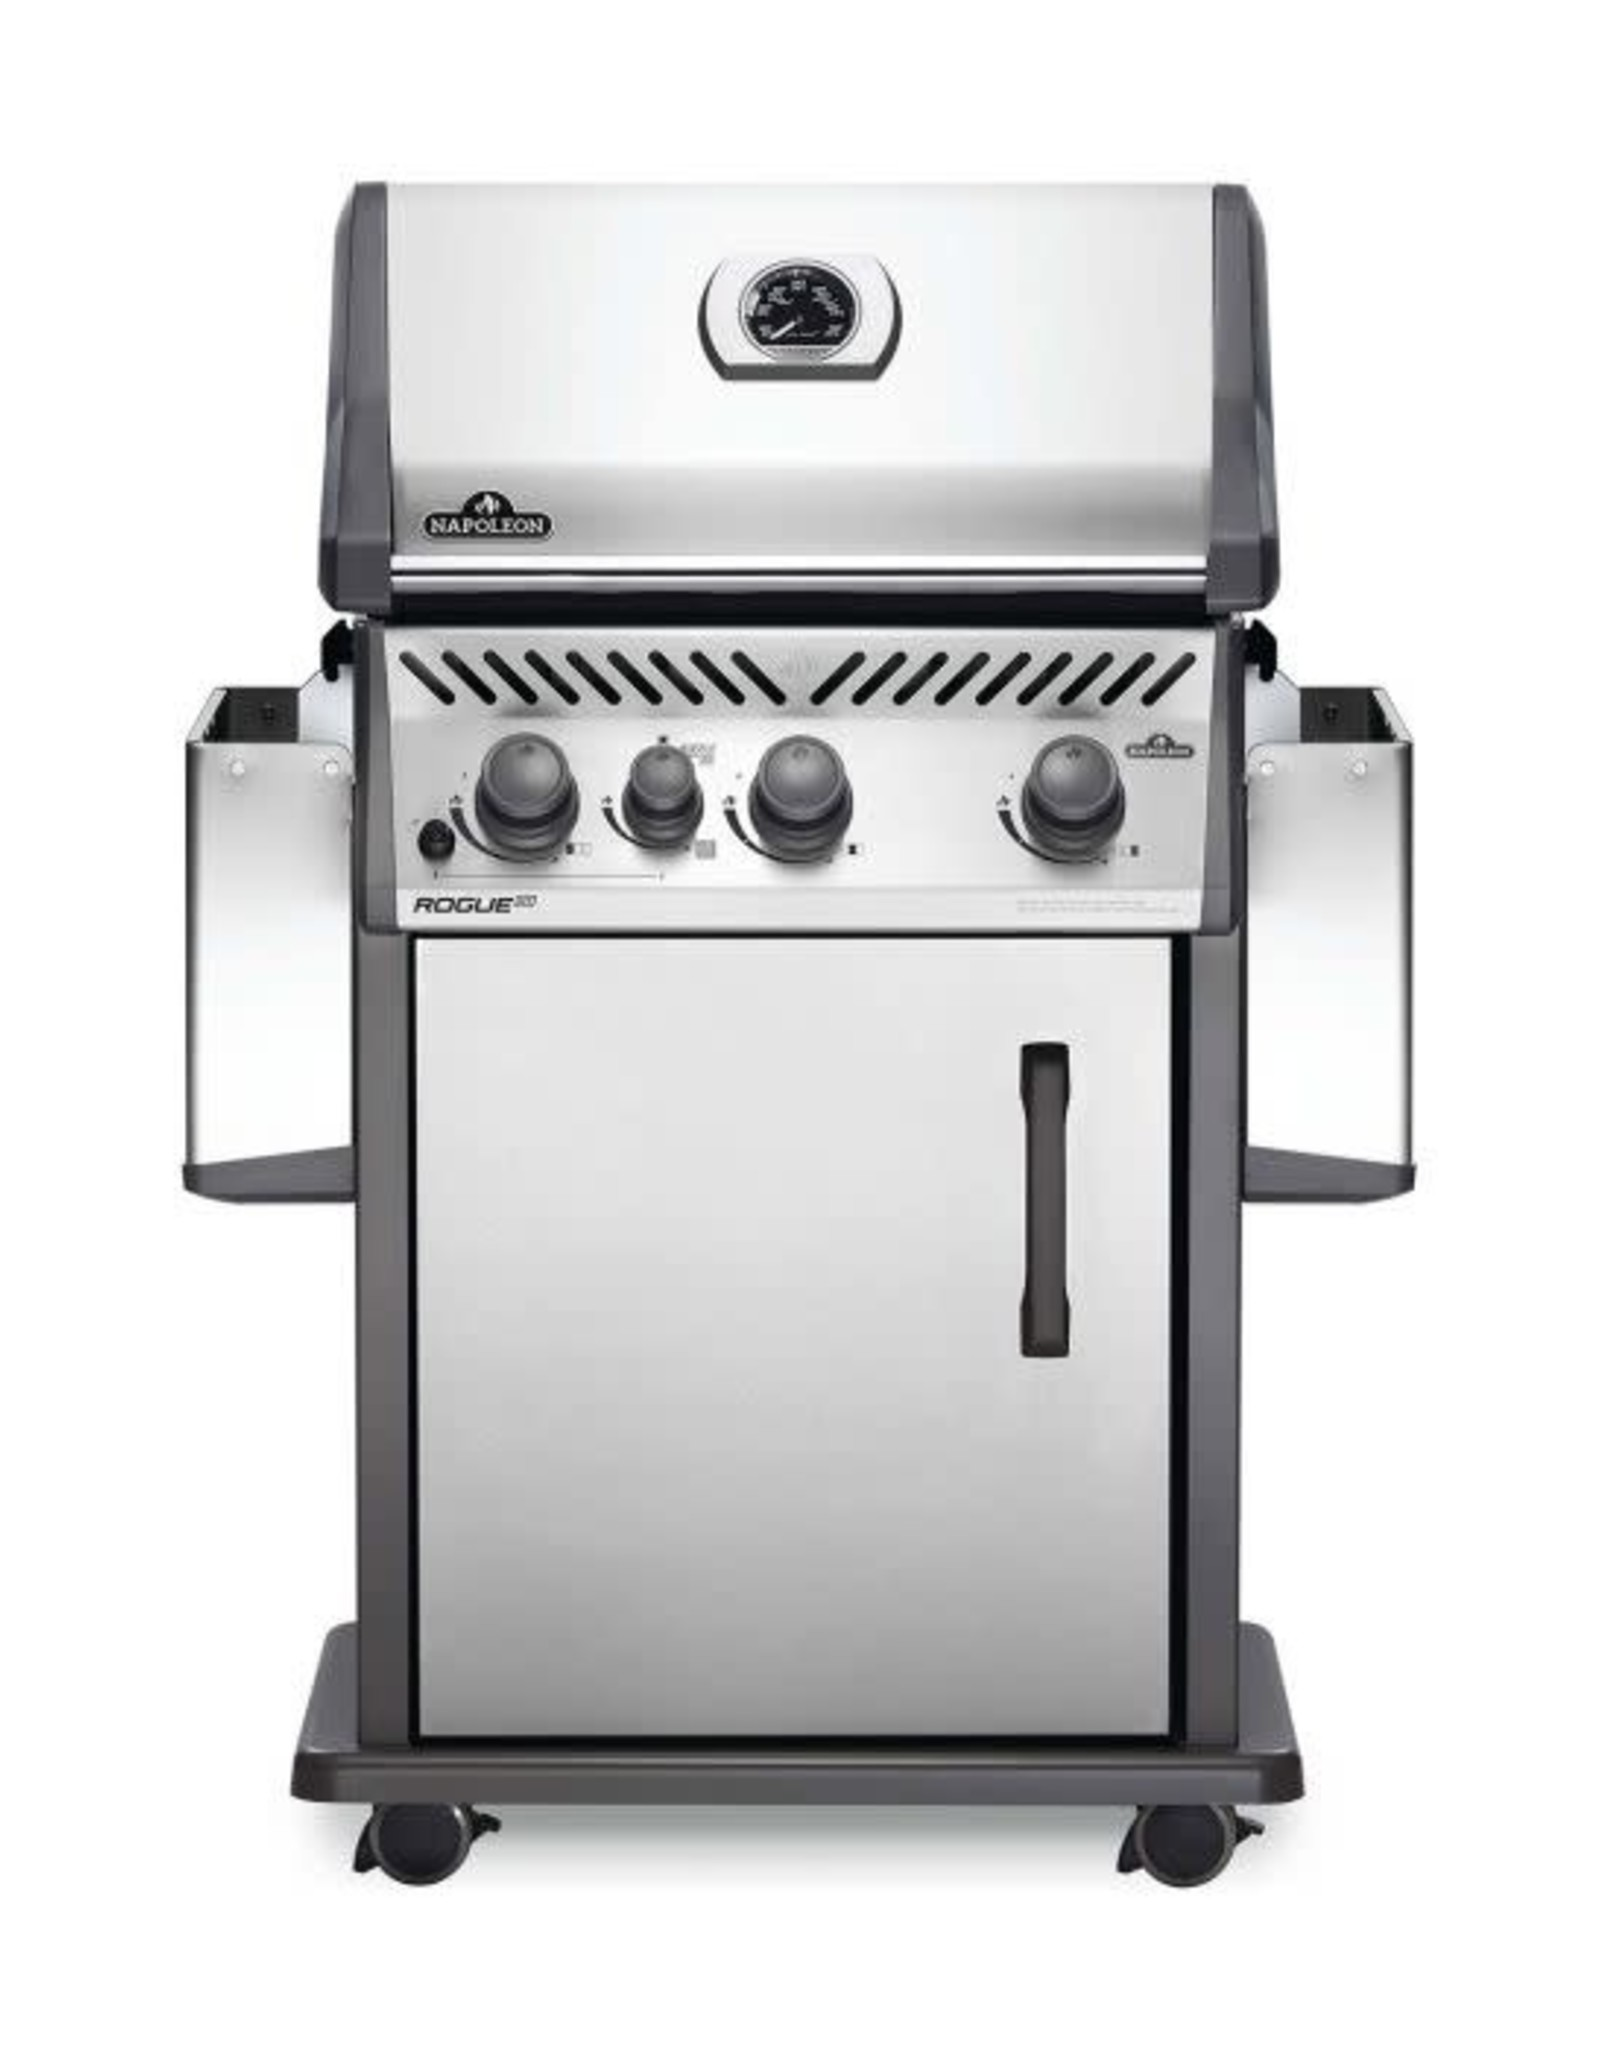 Napoleon Napoleon Rogue XT 425 Propane Gas Grill - Stainless Steel - RXT425PSS-1